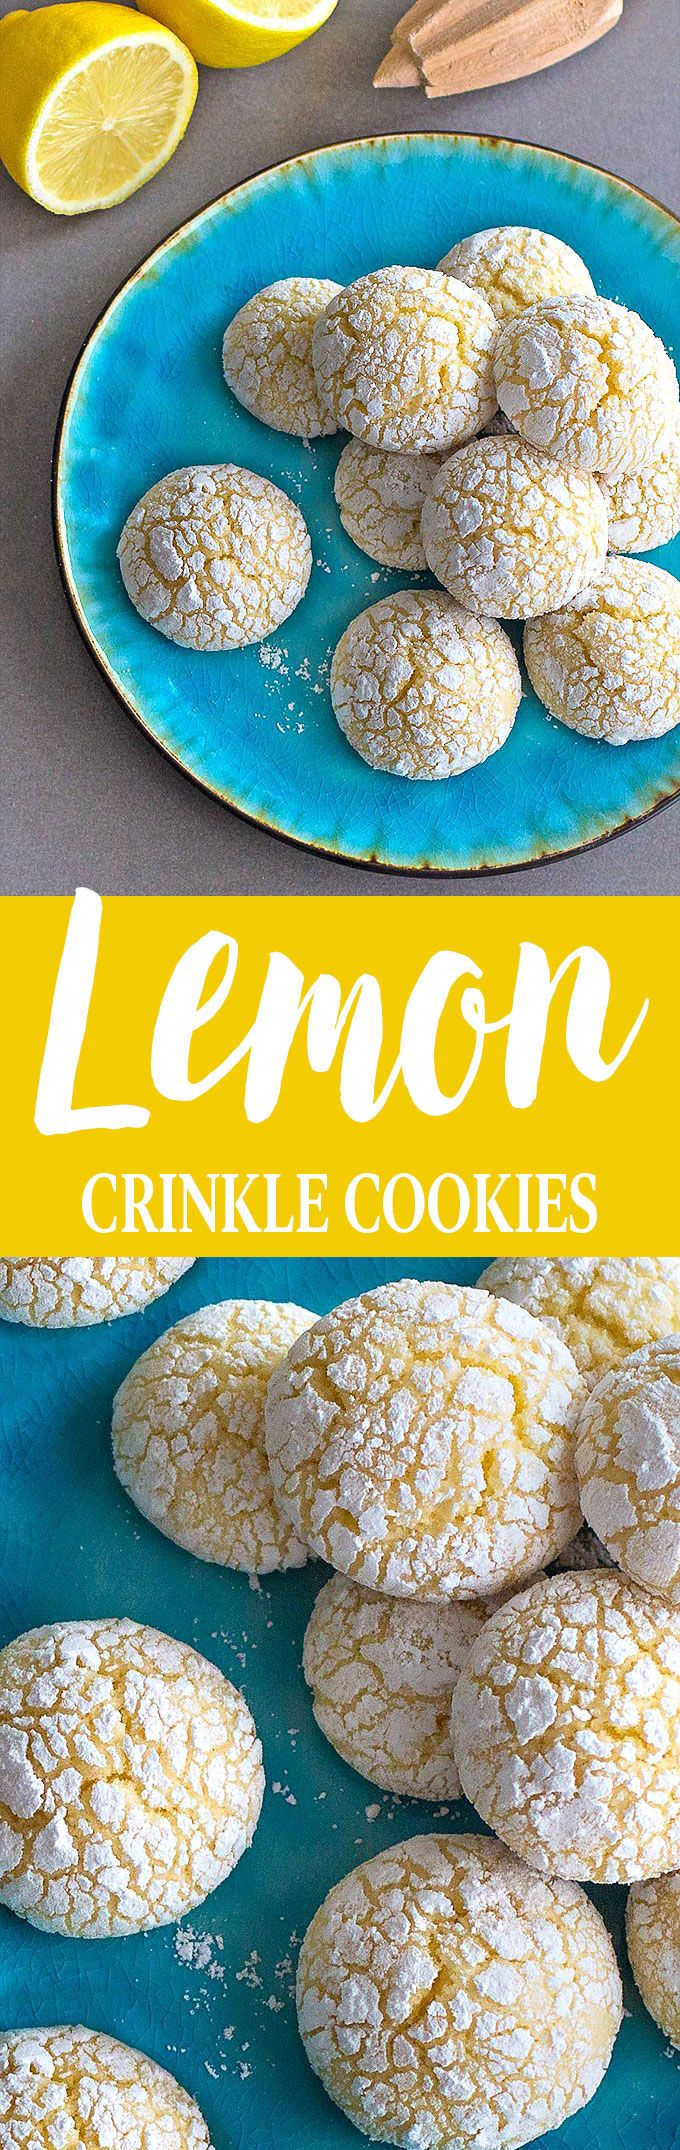 Easy lemon crinkle cookies made from scratch! Slightly crispy on the outside, soft on the inside, each cookie is packed with a delightful lemony flavor! (Easy Baking Recipes From Scratch)